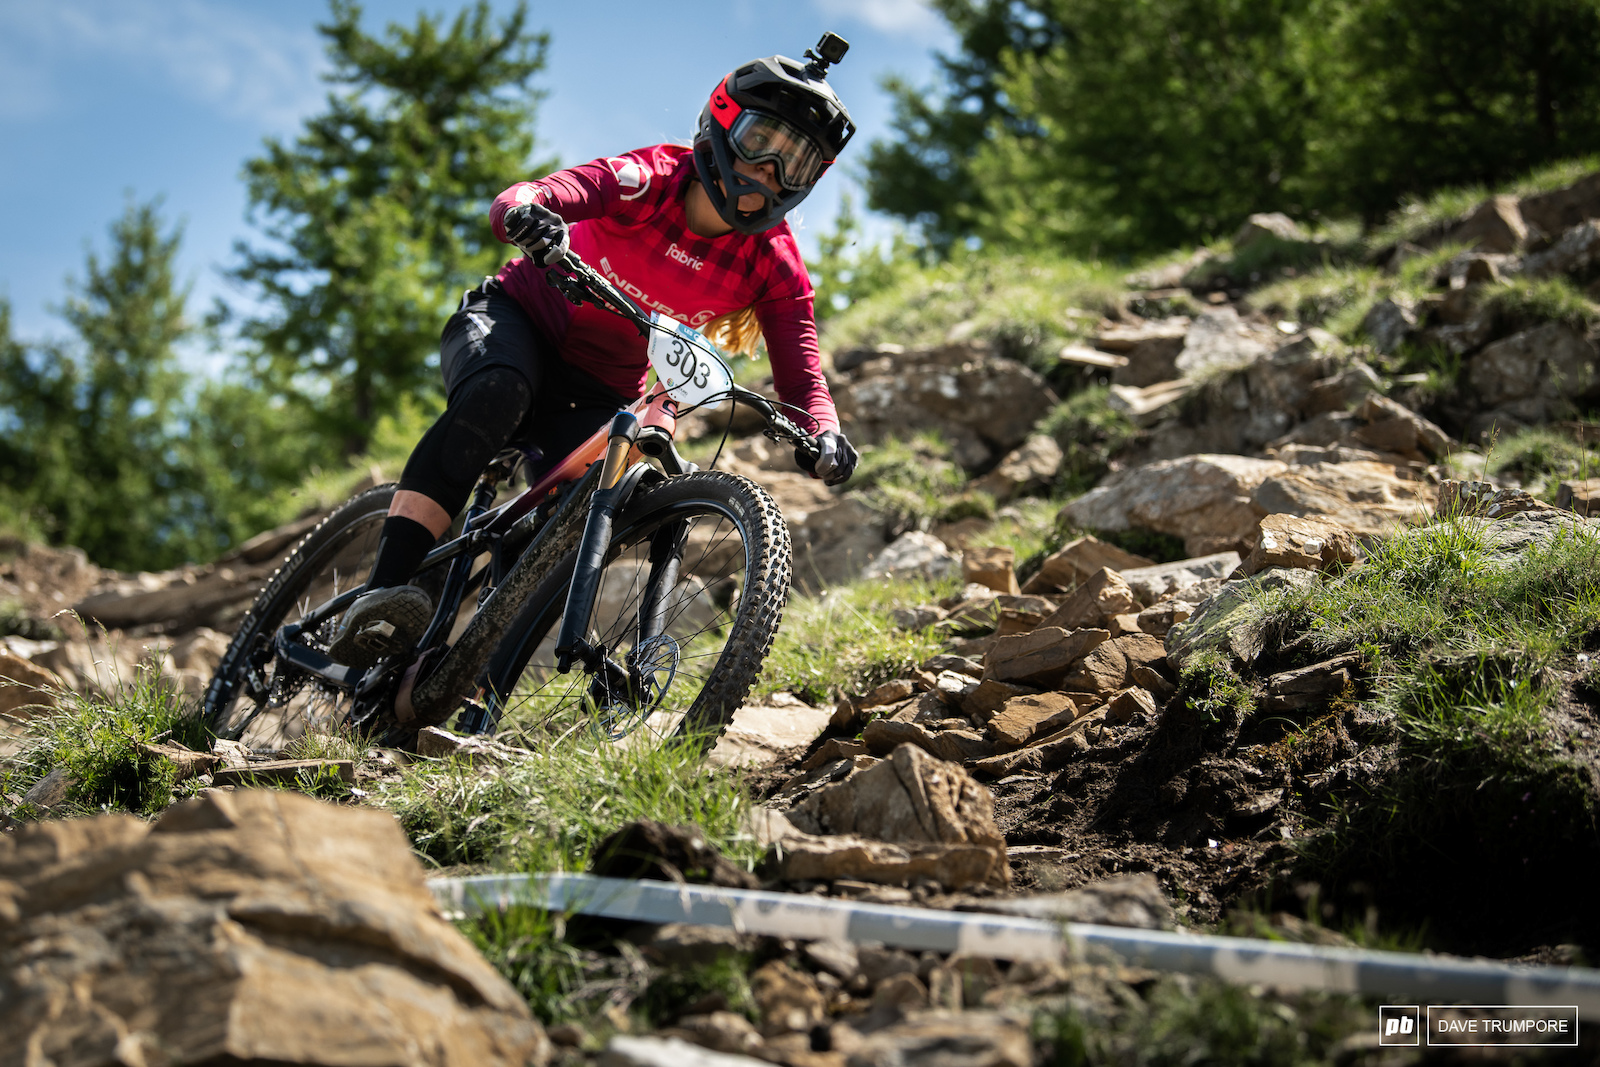 Unfortunately a big crash in the rocks ended Ella Conolly s season with what looks to be a broken arm and injured leg.